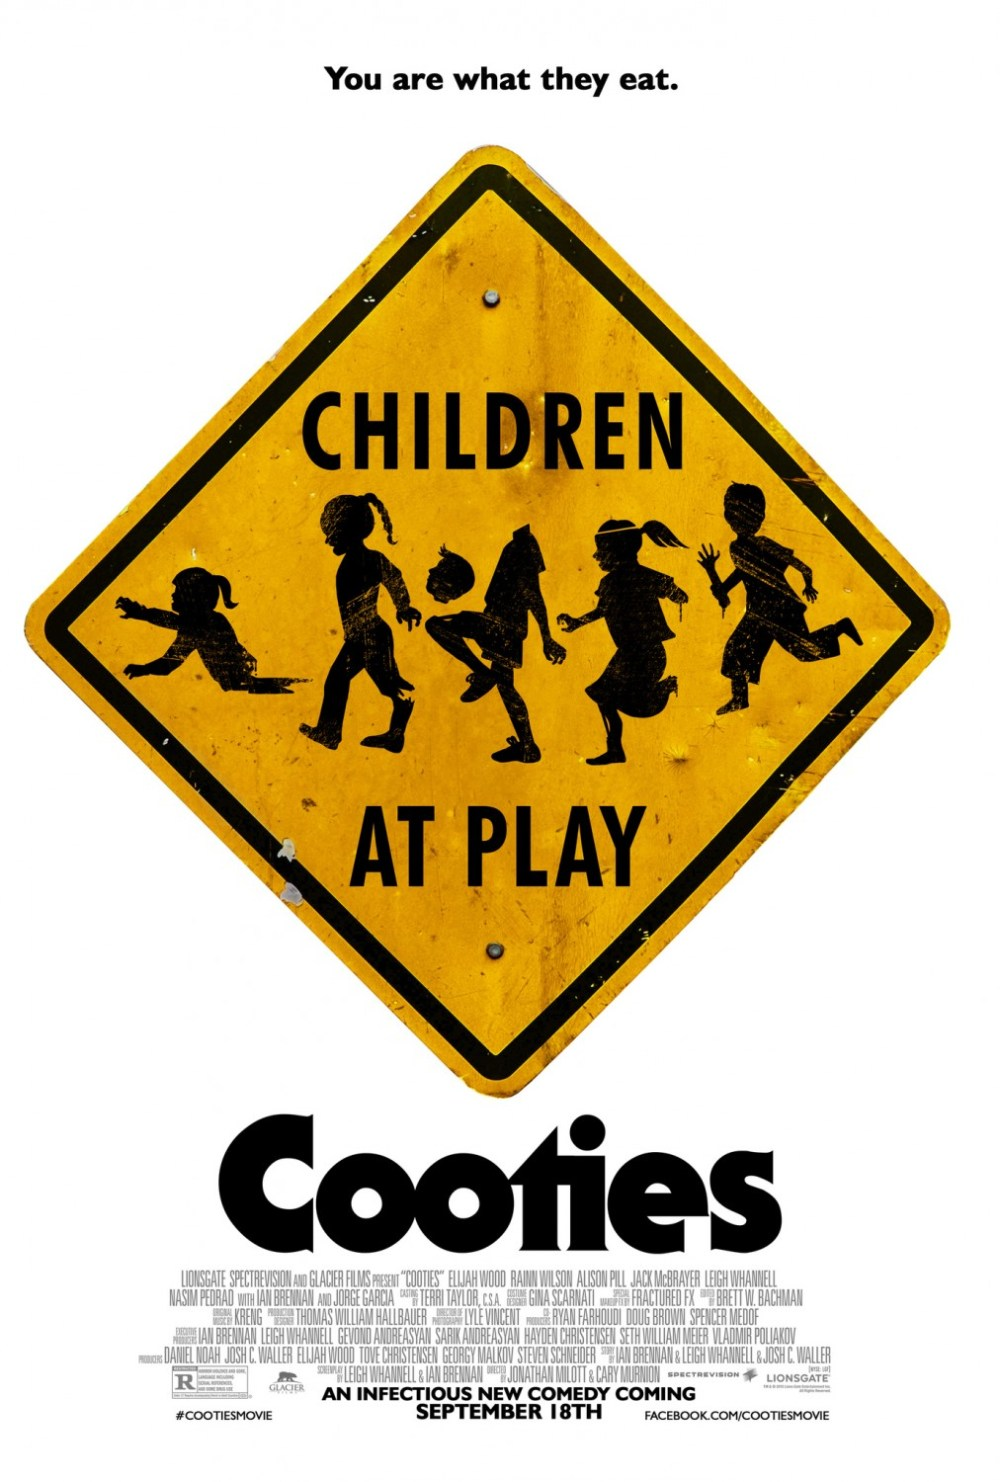 Cooties, image via Lionsgate